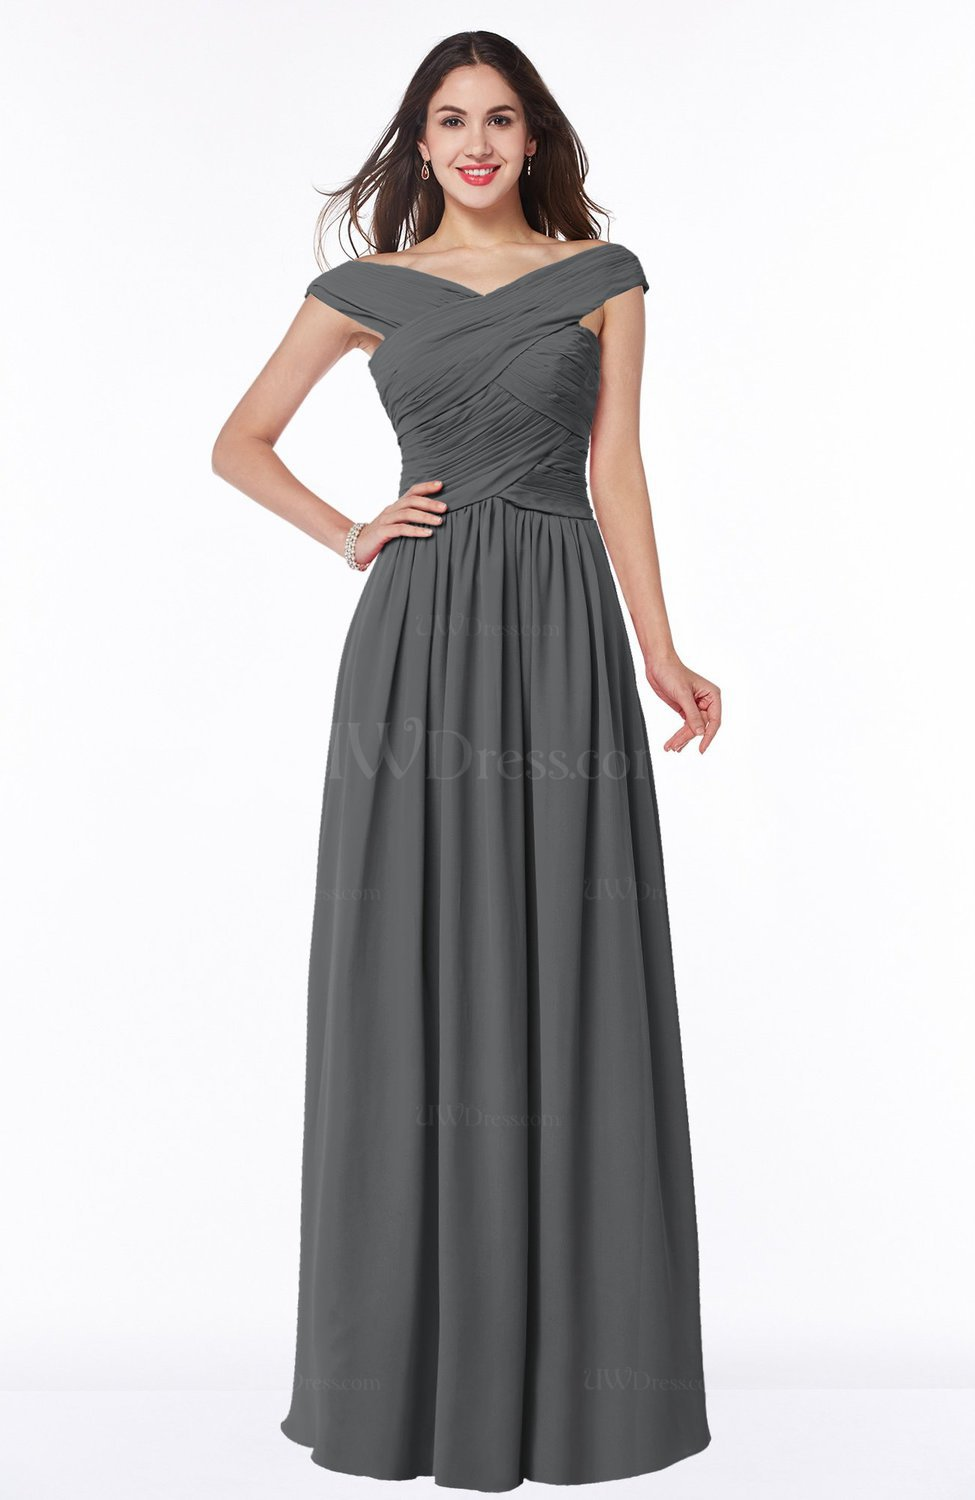 8a3396a396ea Traditional A-line Sleeveless Chiffon Floor Length Plus Size Bridesmaid  Dresses